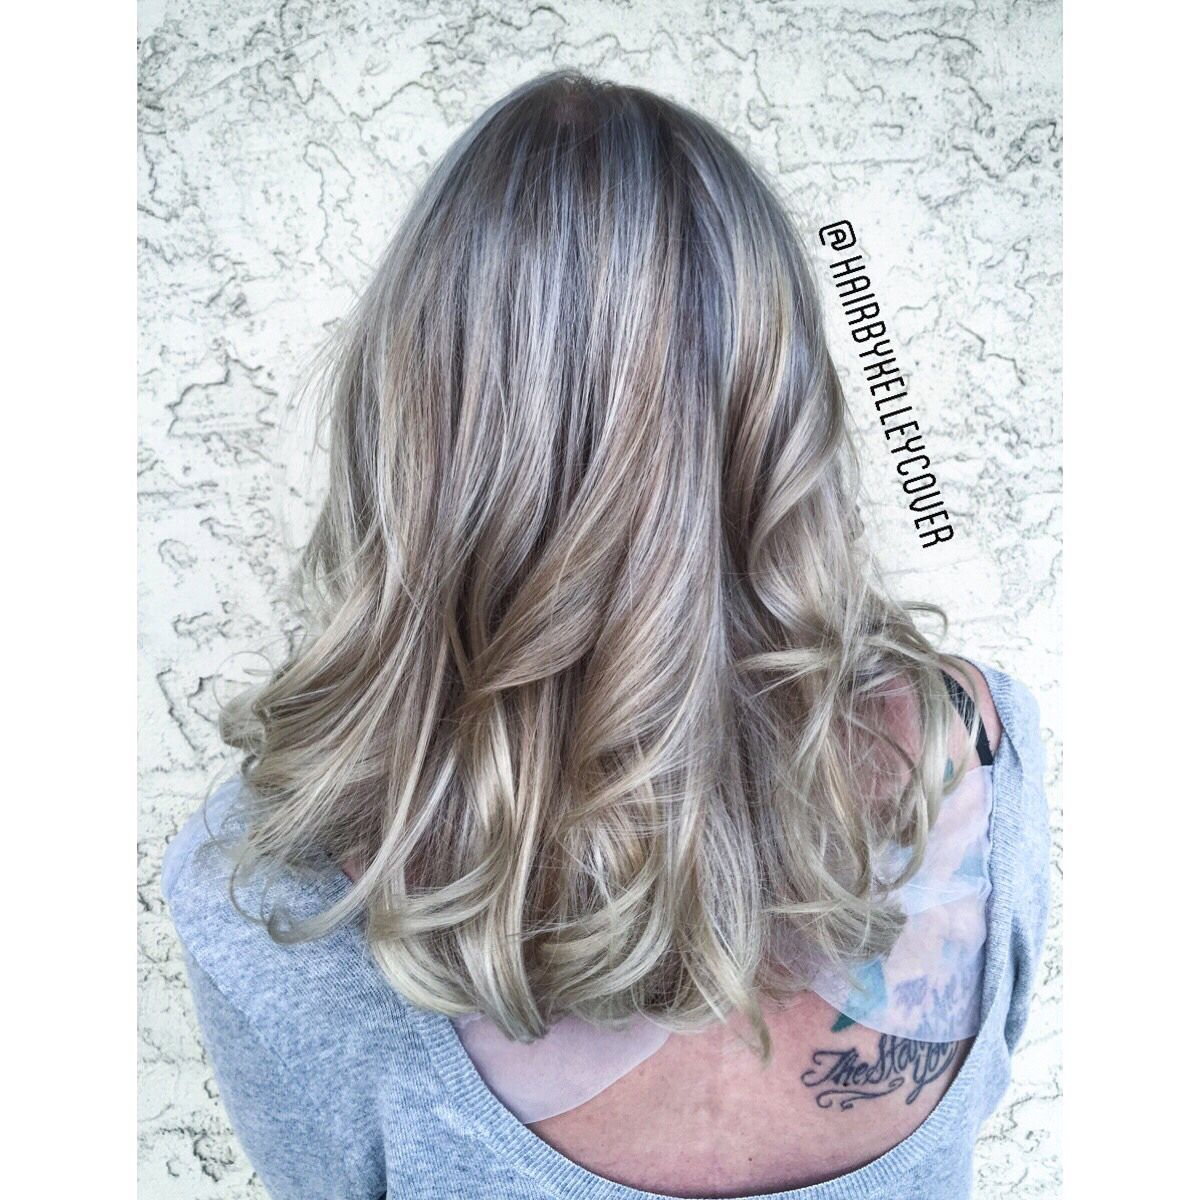 Cool blonde using Redken Shades EQ gloss in 09P and Kenra